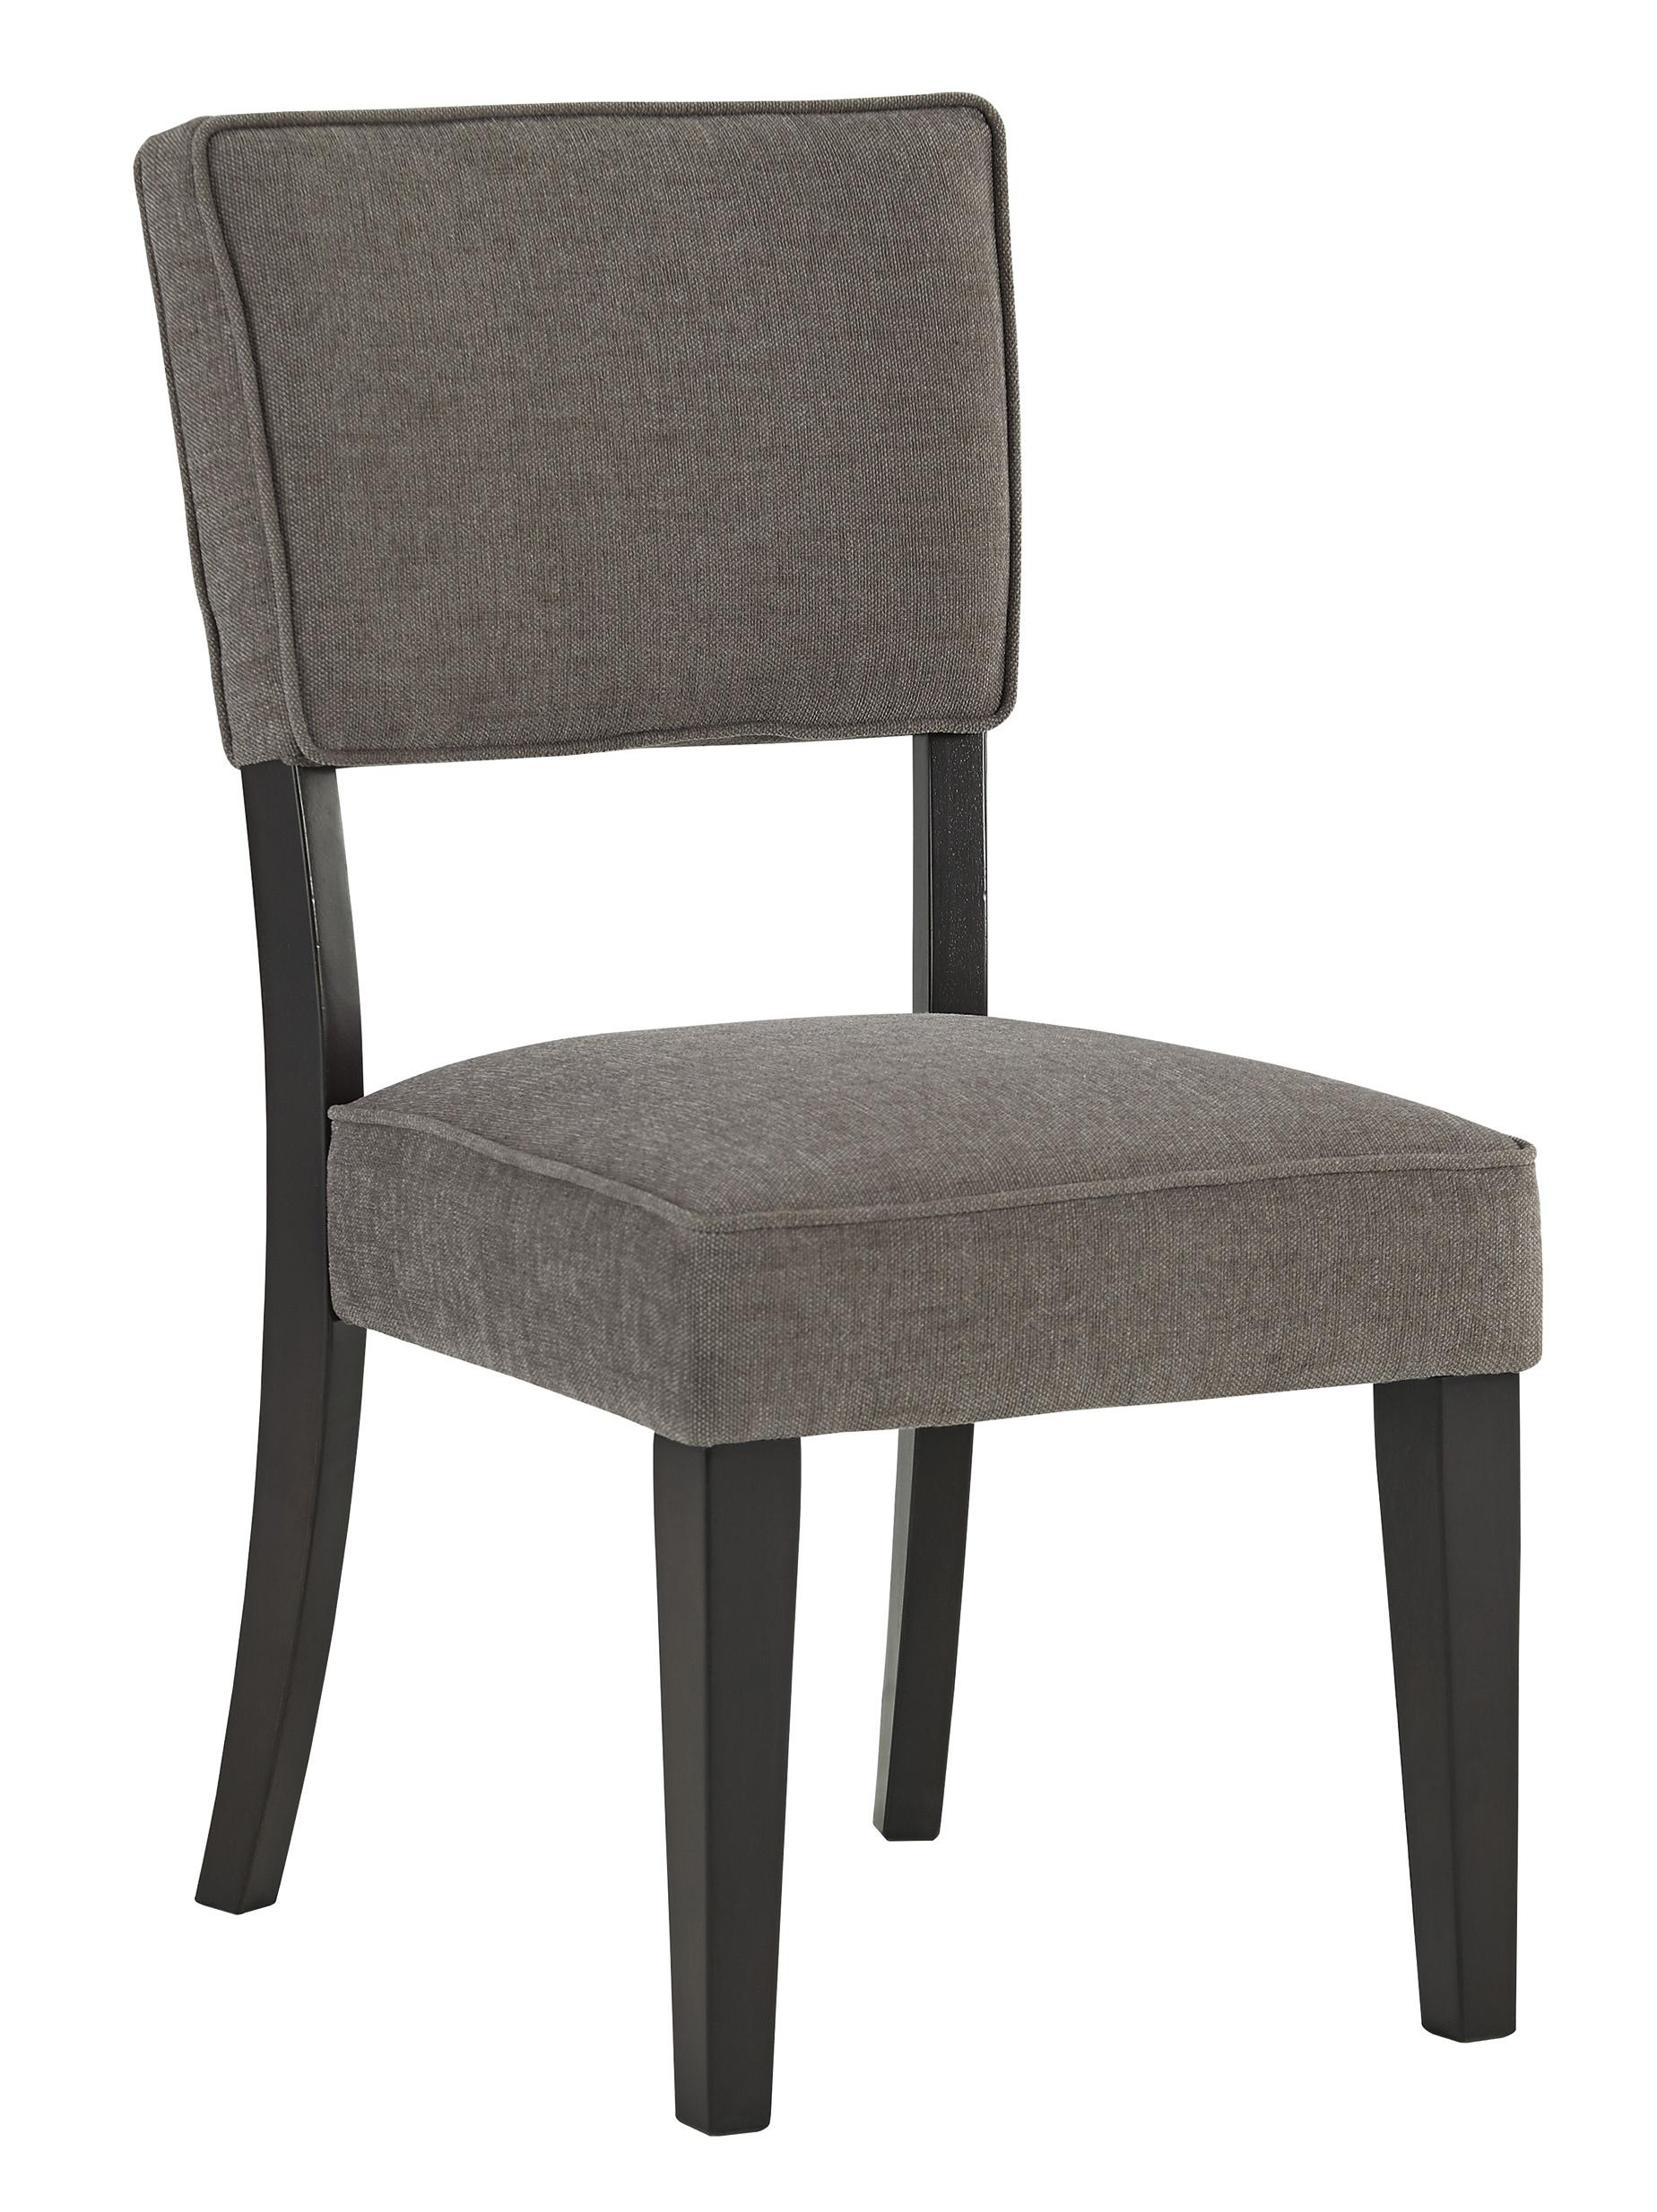 Gavelston Dining Upholstered Side Chair by Signature Design at Fisher Home Furnishings